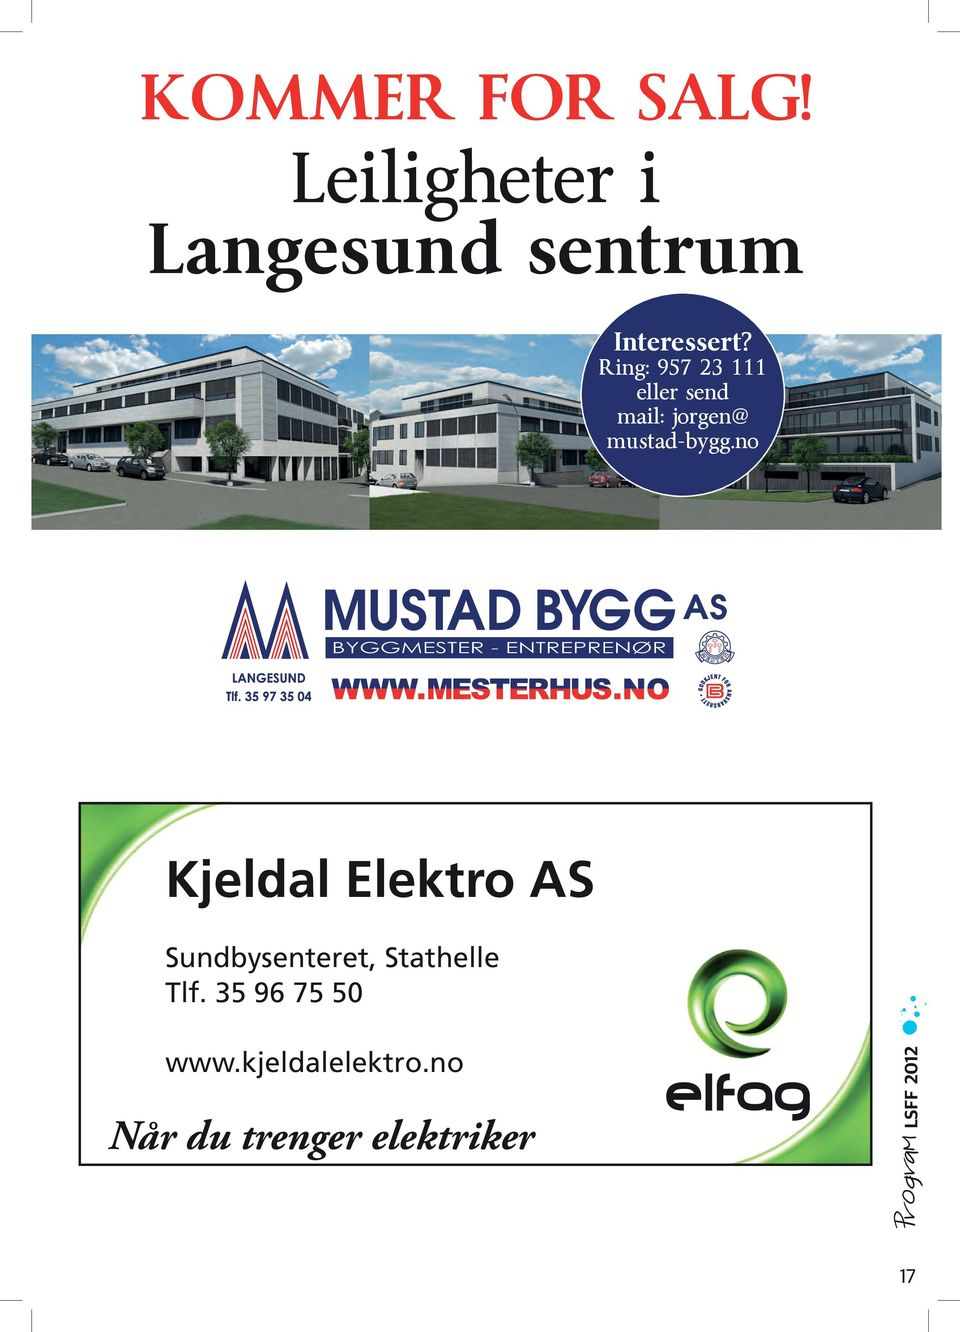 Ring: 957 23 111 eller send mail: jorgen@ mustad-bygg.